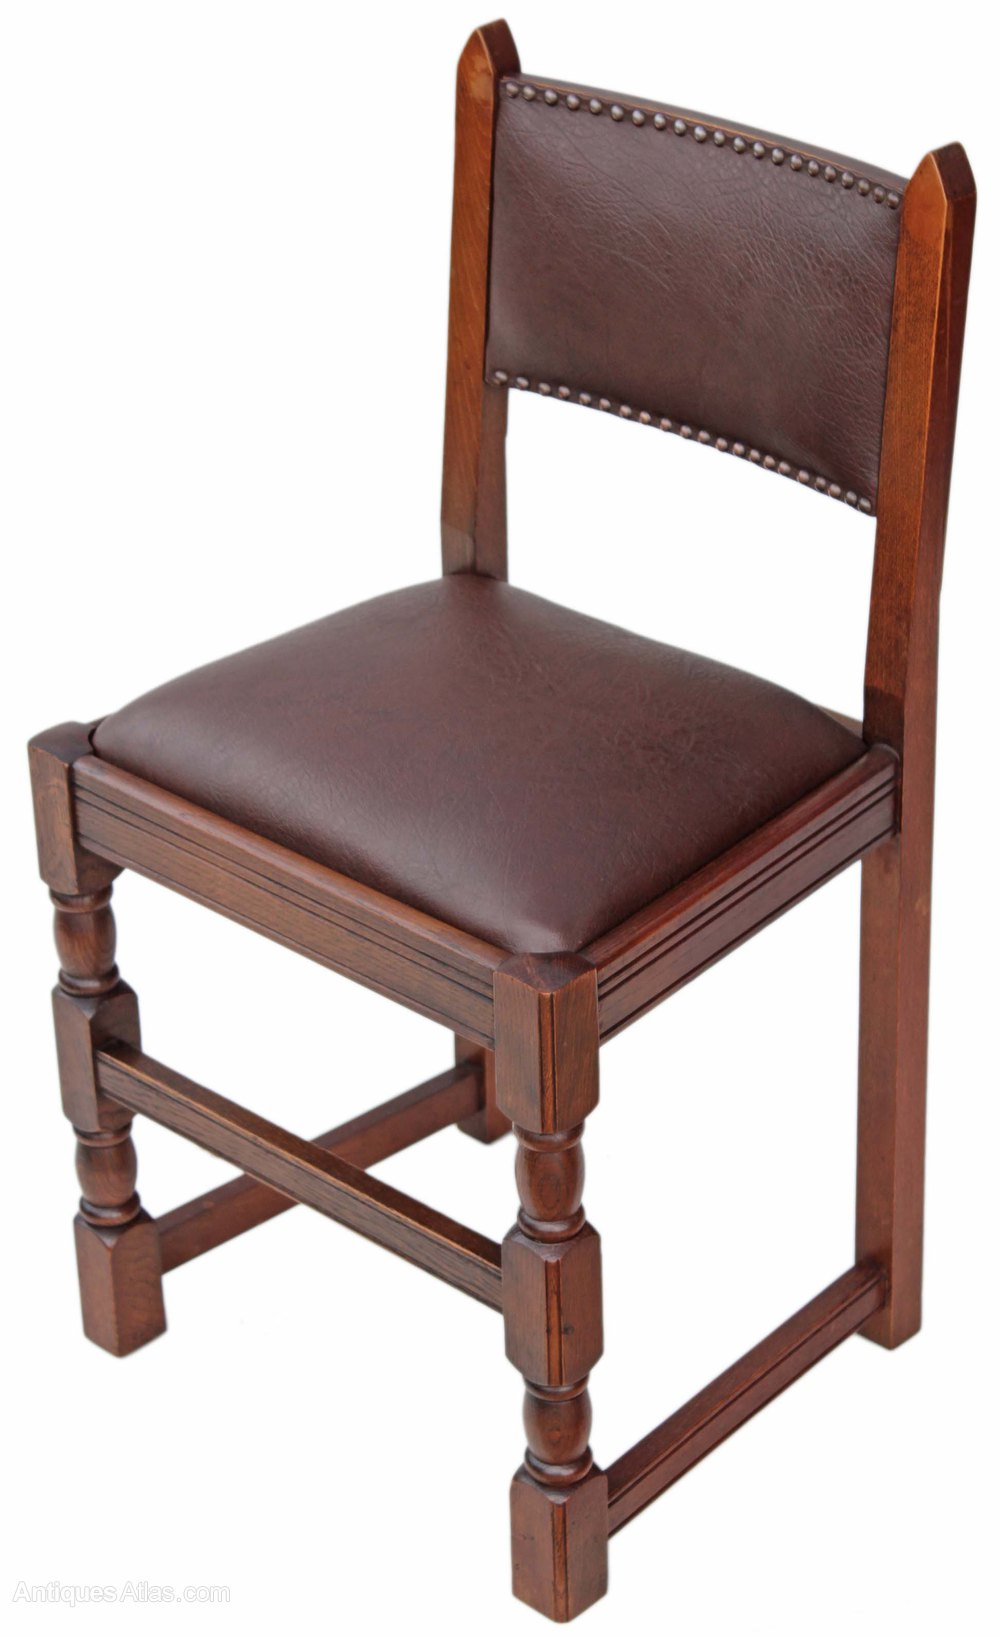 antiques atlas set of 4 oak gothic revival dining chairs. Black Bedroom Furniture Sets. Home Design Ideas